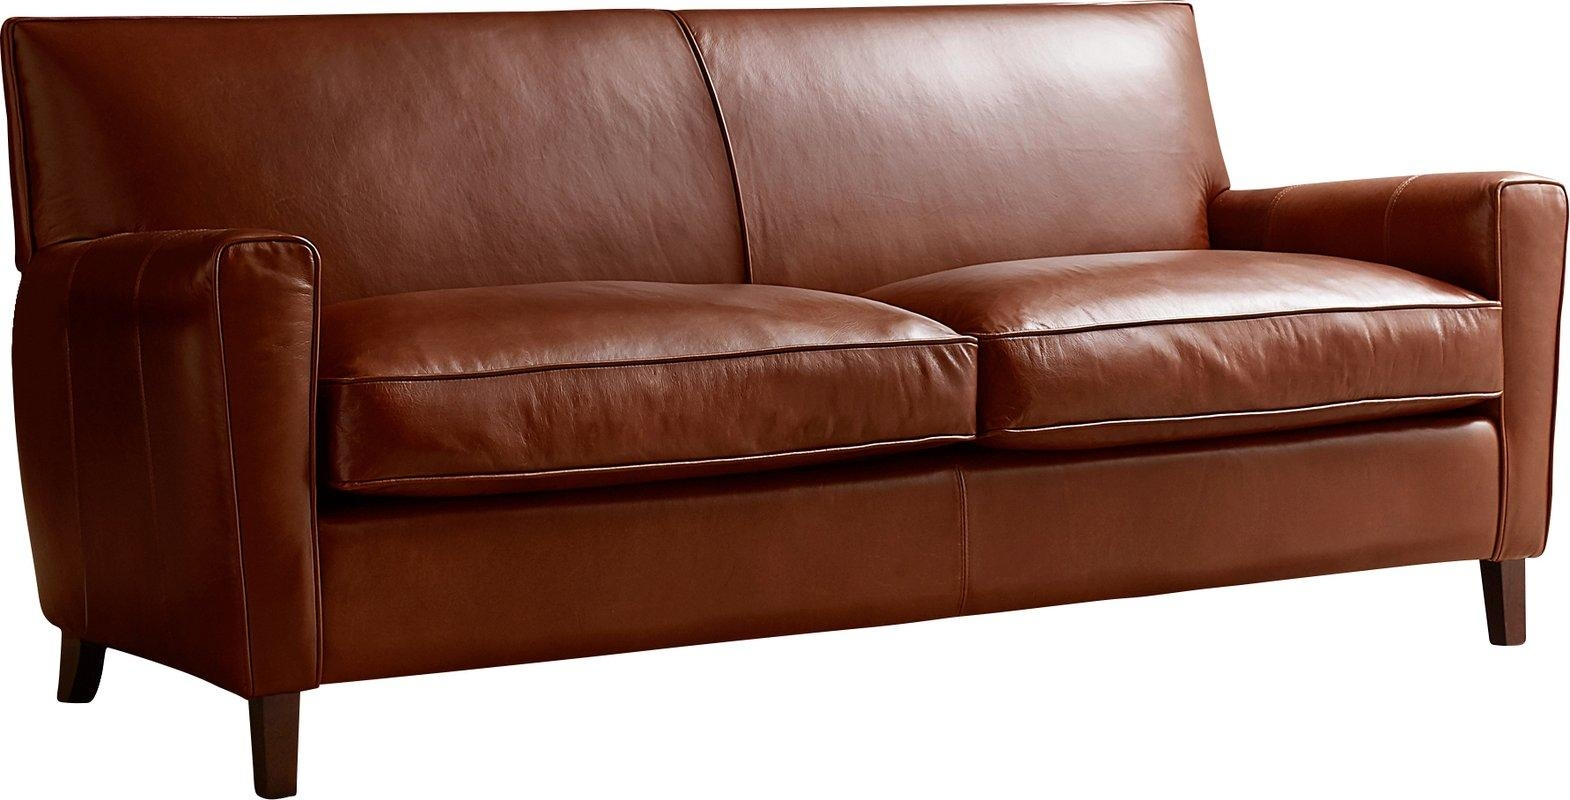 Allmodern Custom Upholstery Foster Leather Sofa & Reviews | Wayfair For Foster Leather Sofas (Image 2 of 20)